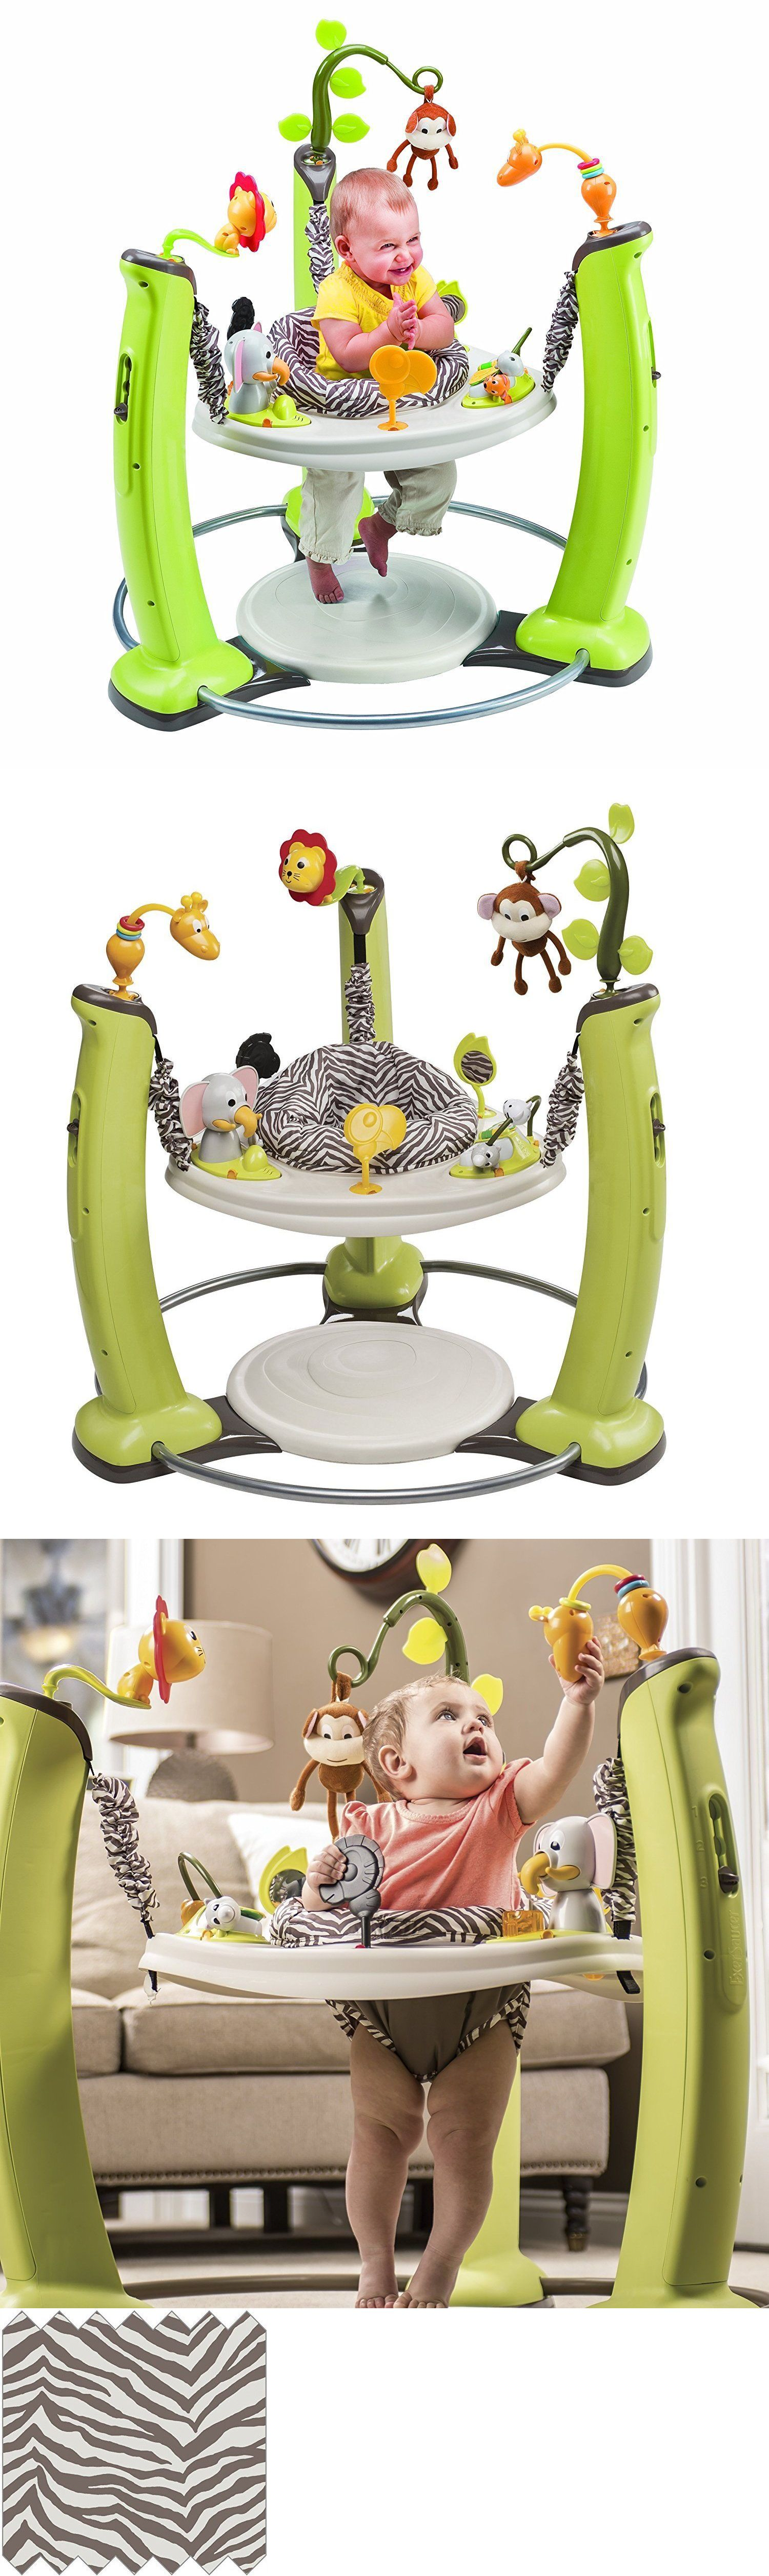 f2d9a0371 Baby Jump Jungle Exerciser Activity Learn Center Child Play Toy ...